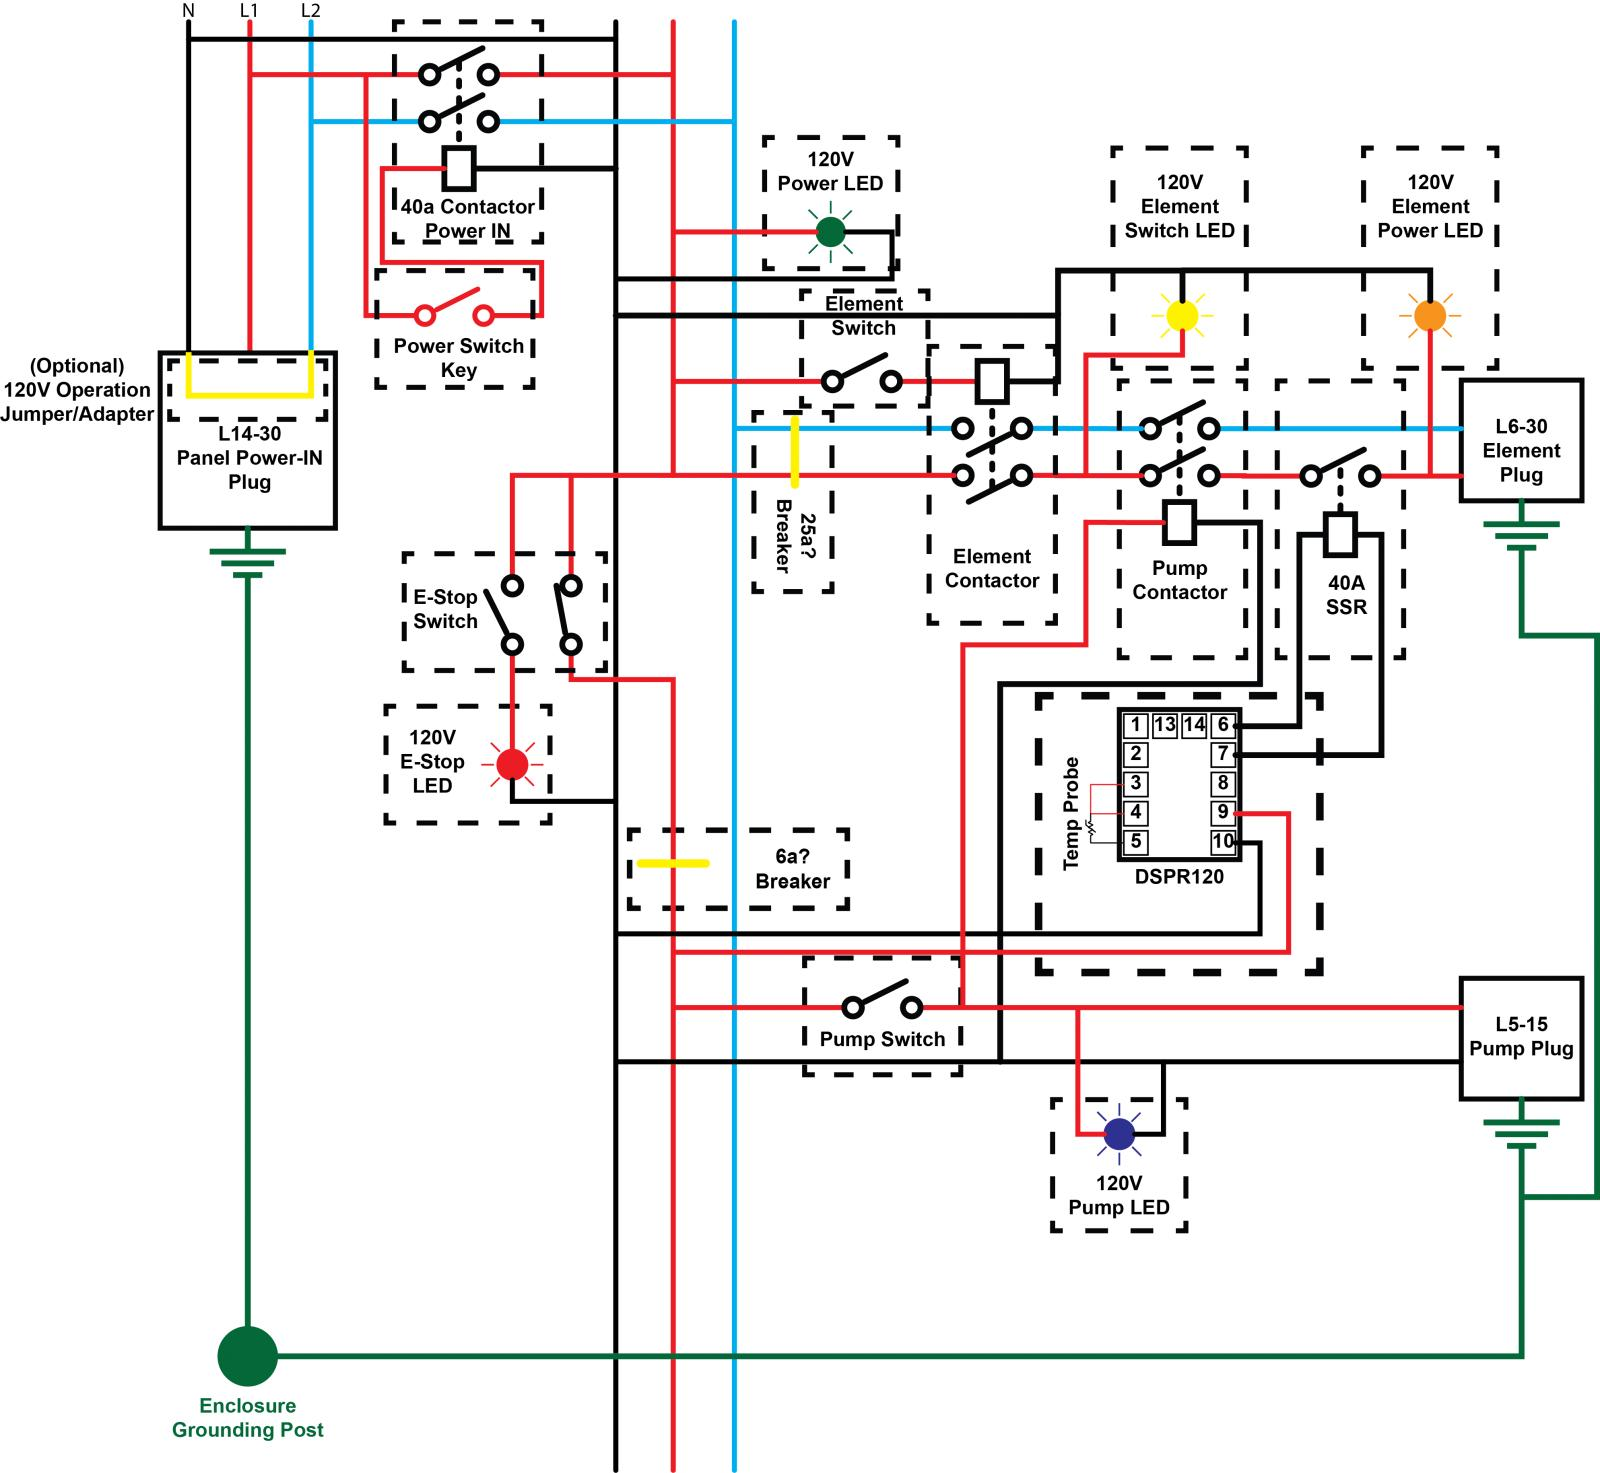 120v led wiring diagram 120v rims turned 240v ebiab - feasible? | homebrewtalk.com ... 120v switch wiring diagram